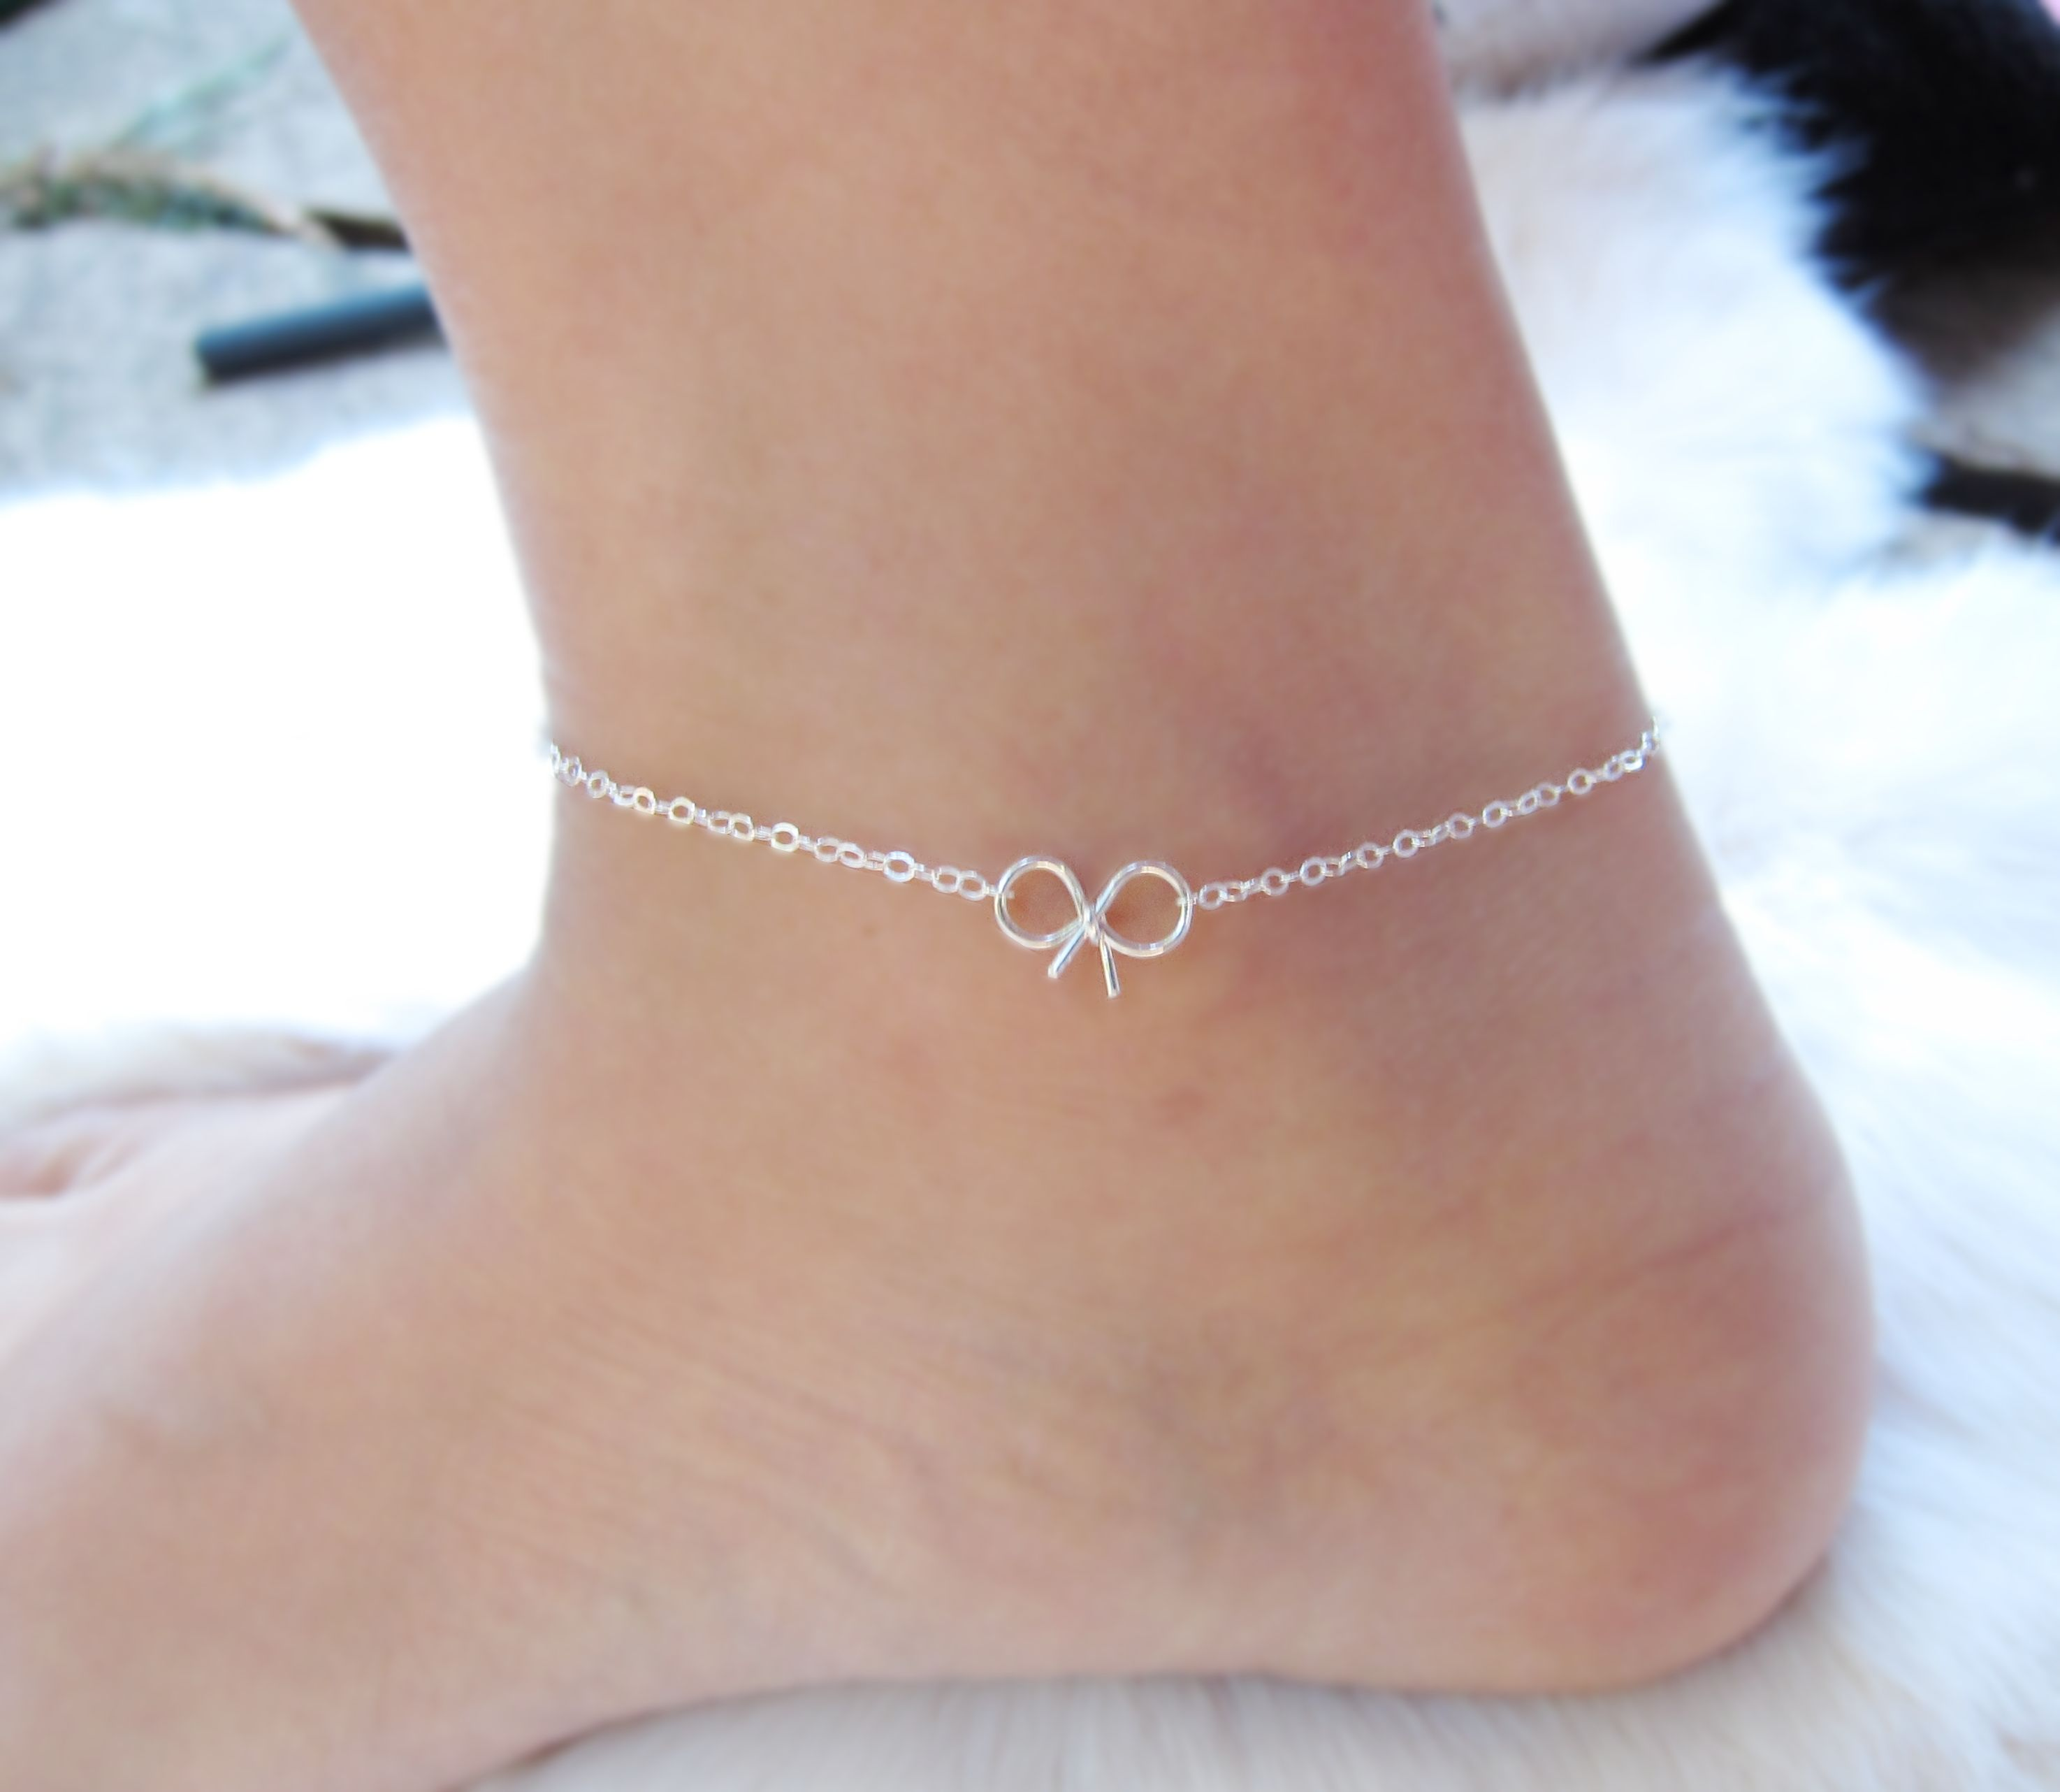 bracelets girls pearl store ribbon ankle anklets glass product simple beach foot sandal anklet black sliver design jewelry imtation barefoot for purple sandals